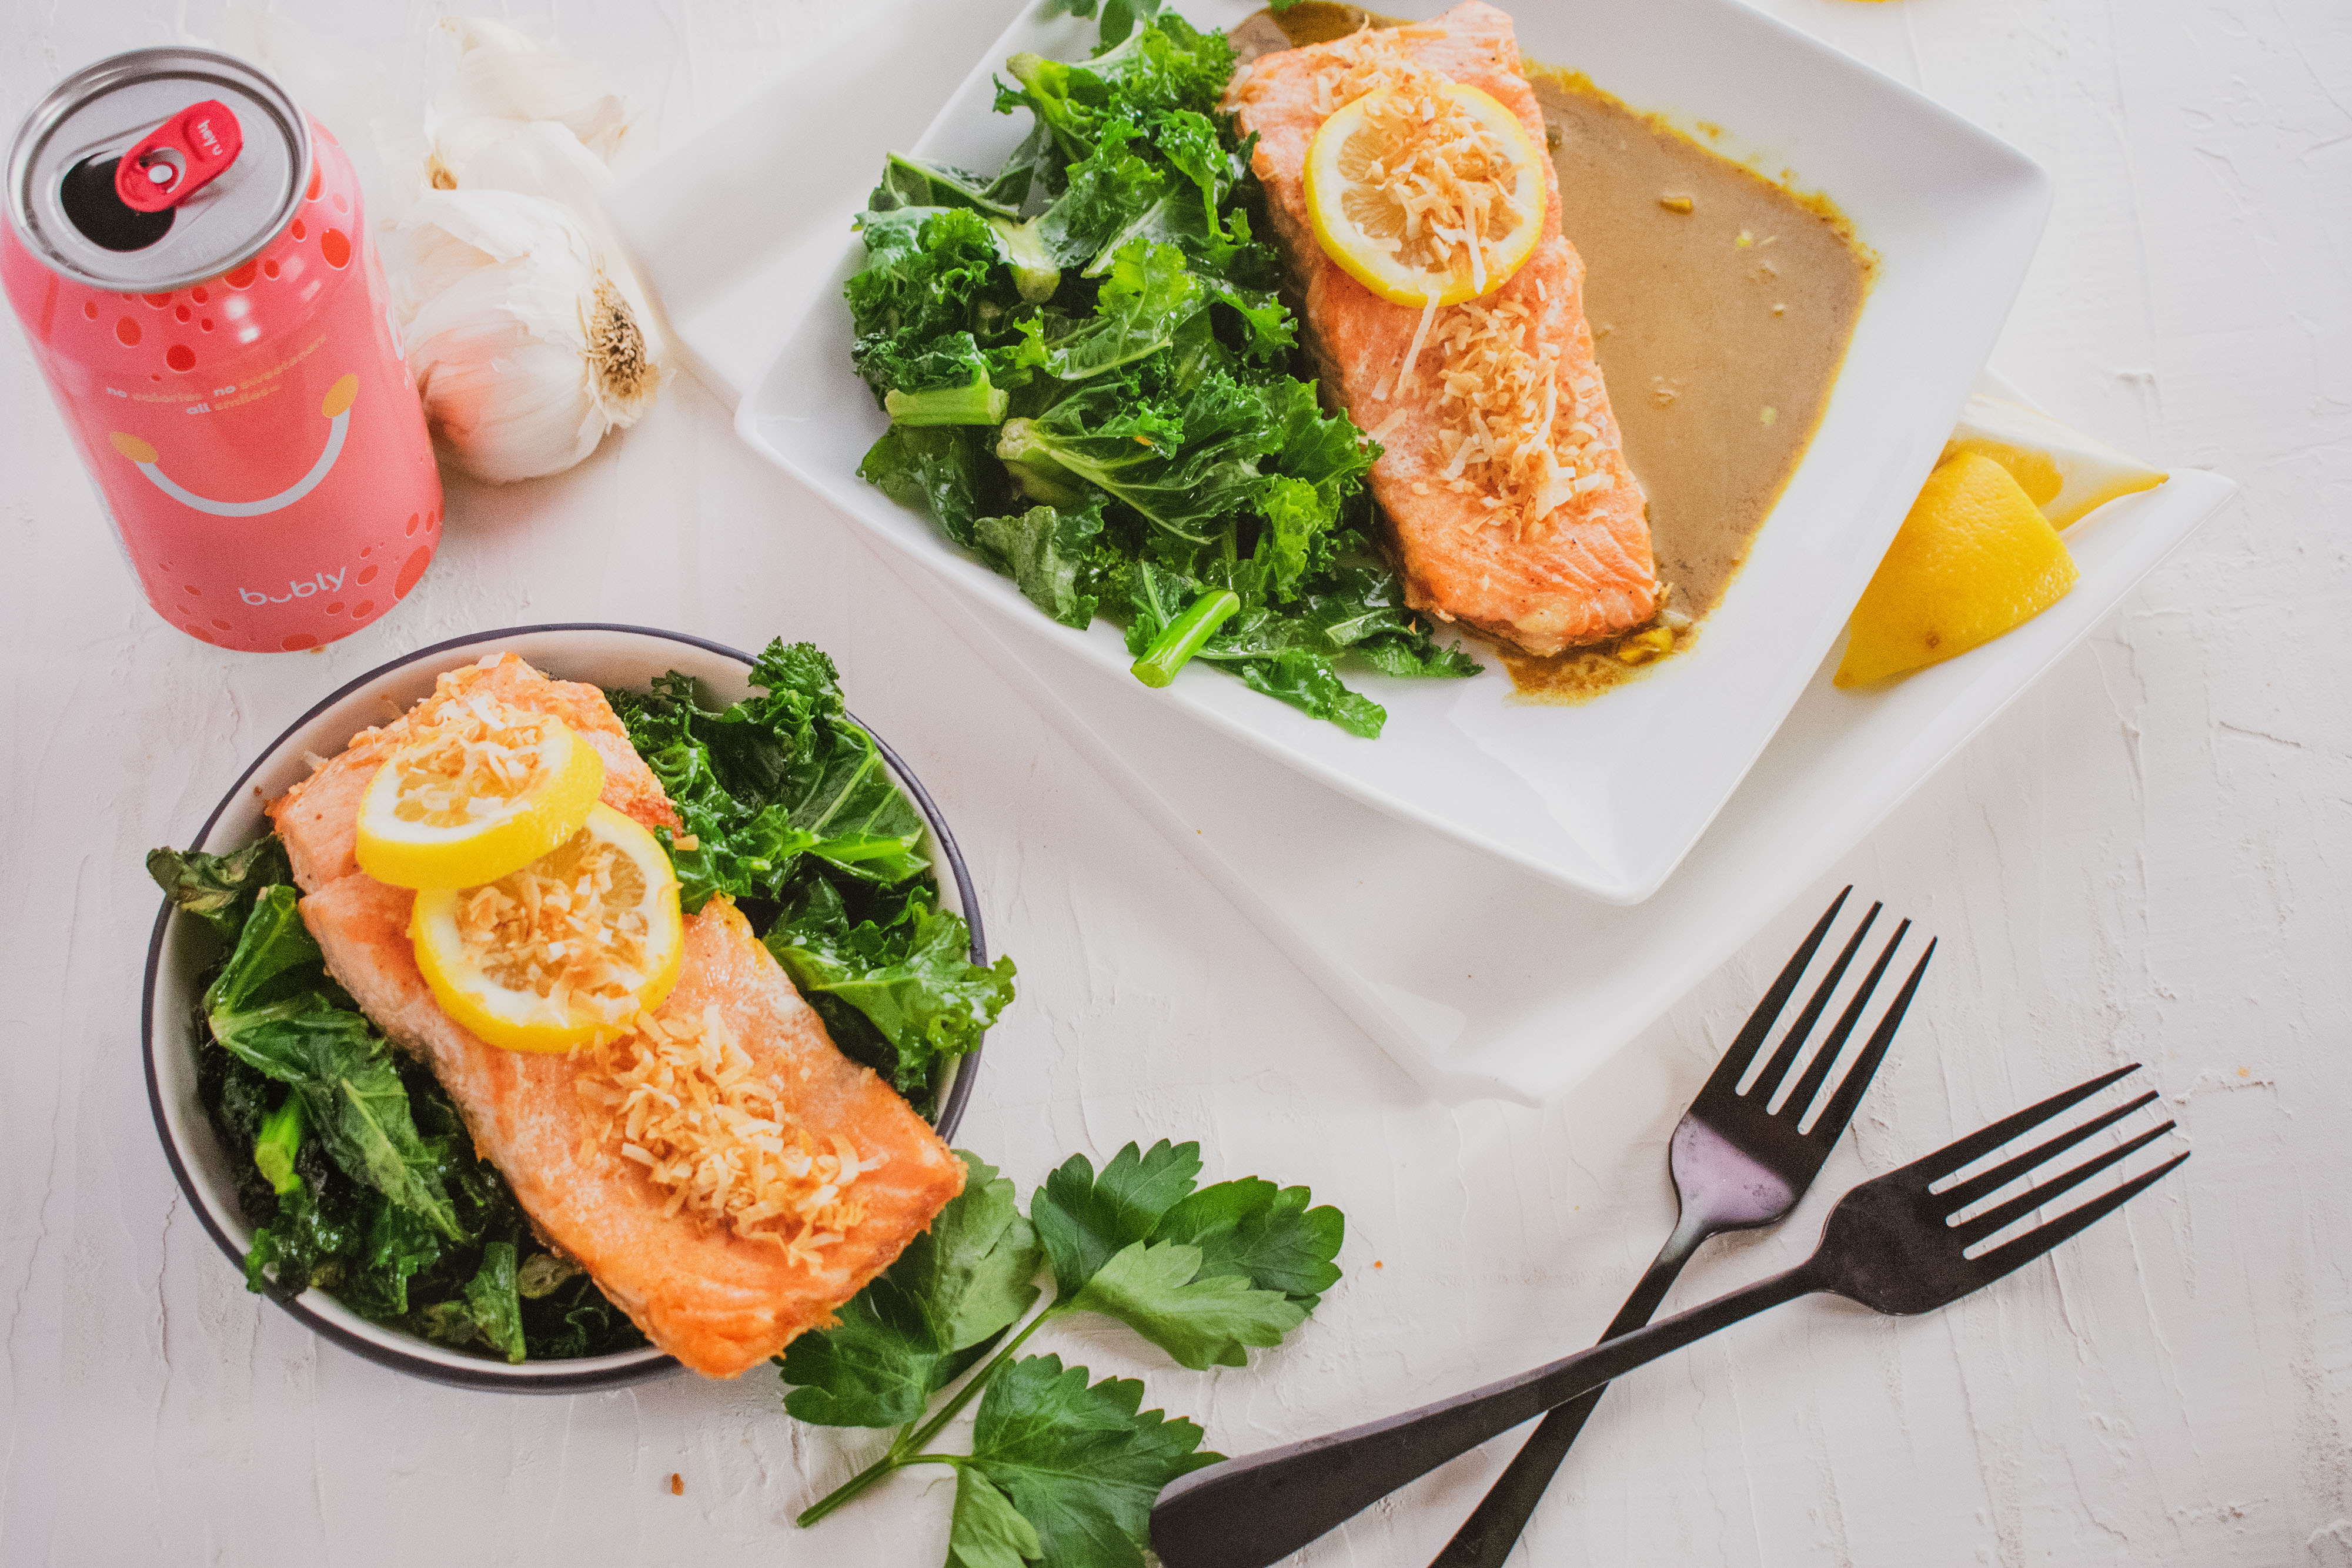 Salmon filet in curry and and kale salad on the side on a white surface